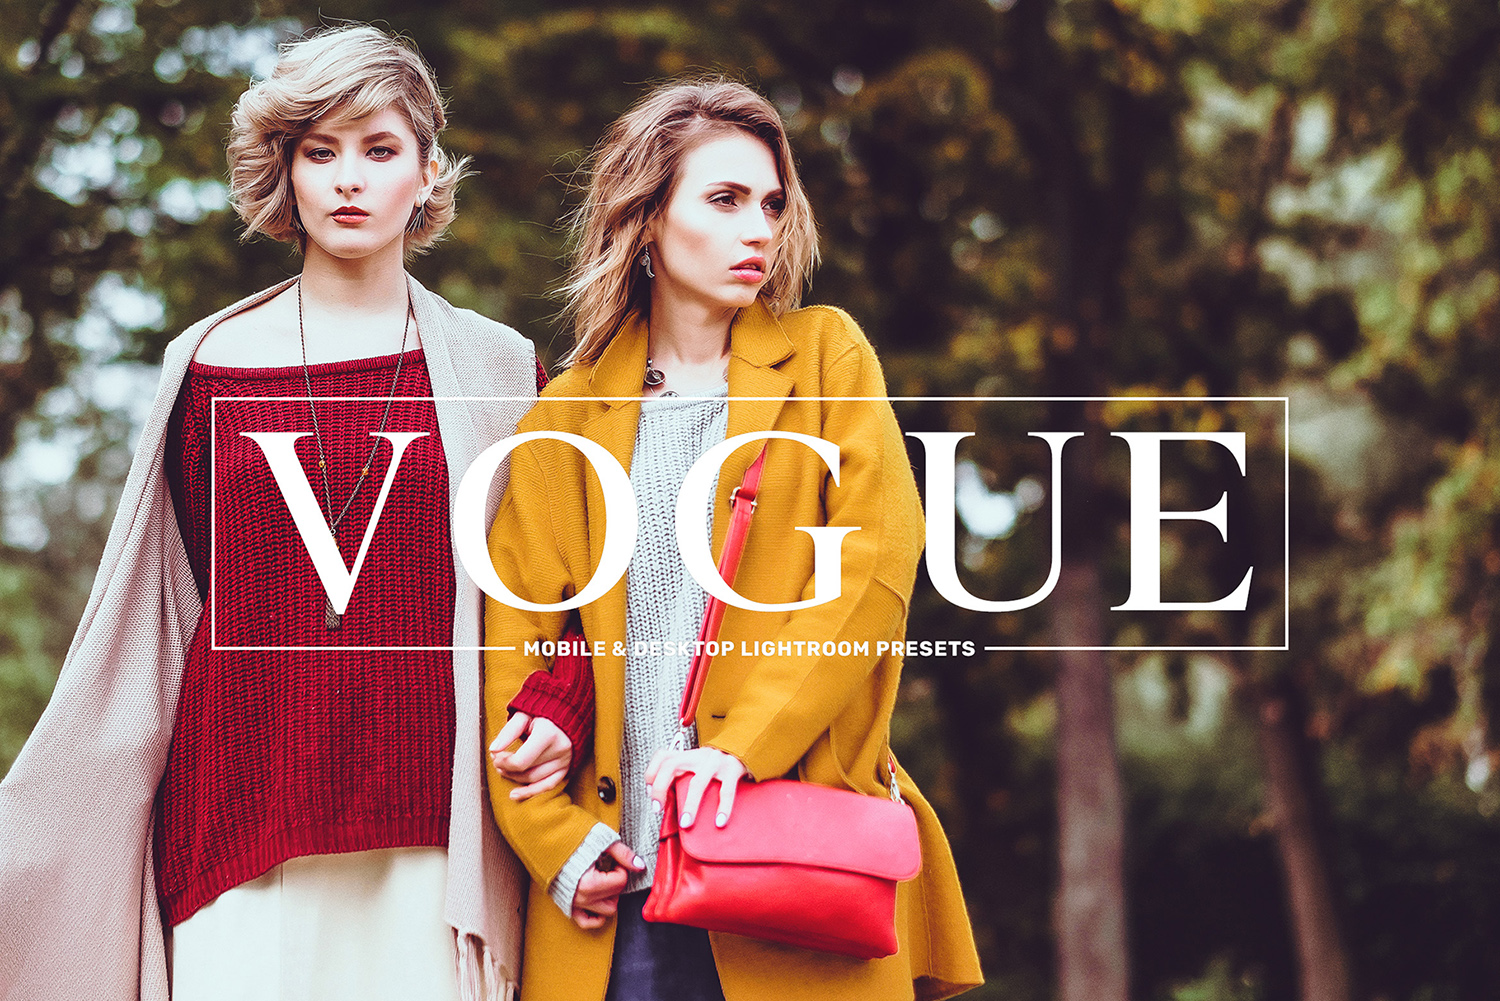 Vogue Mobile & Desktop Lightroom Presets Collection example image 1